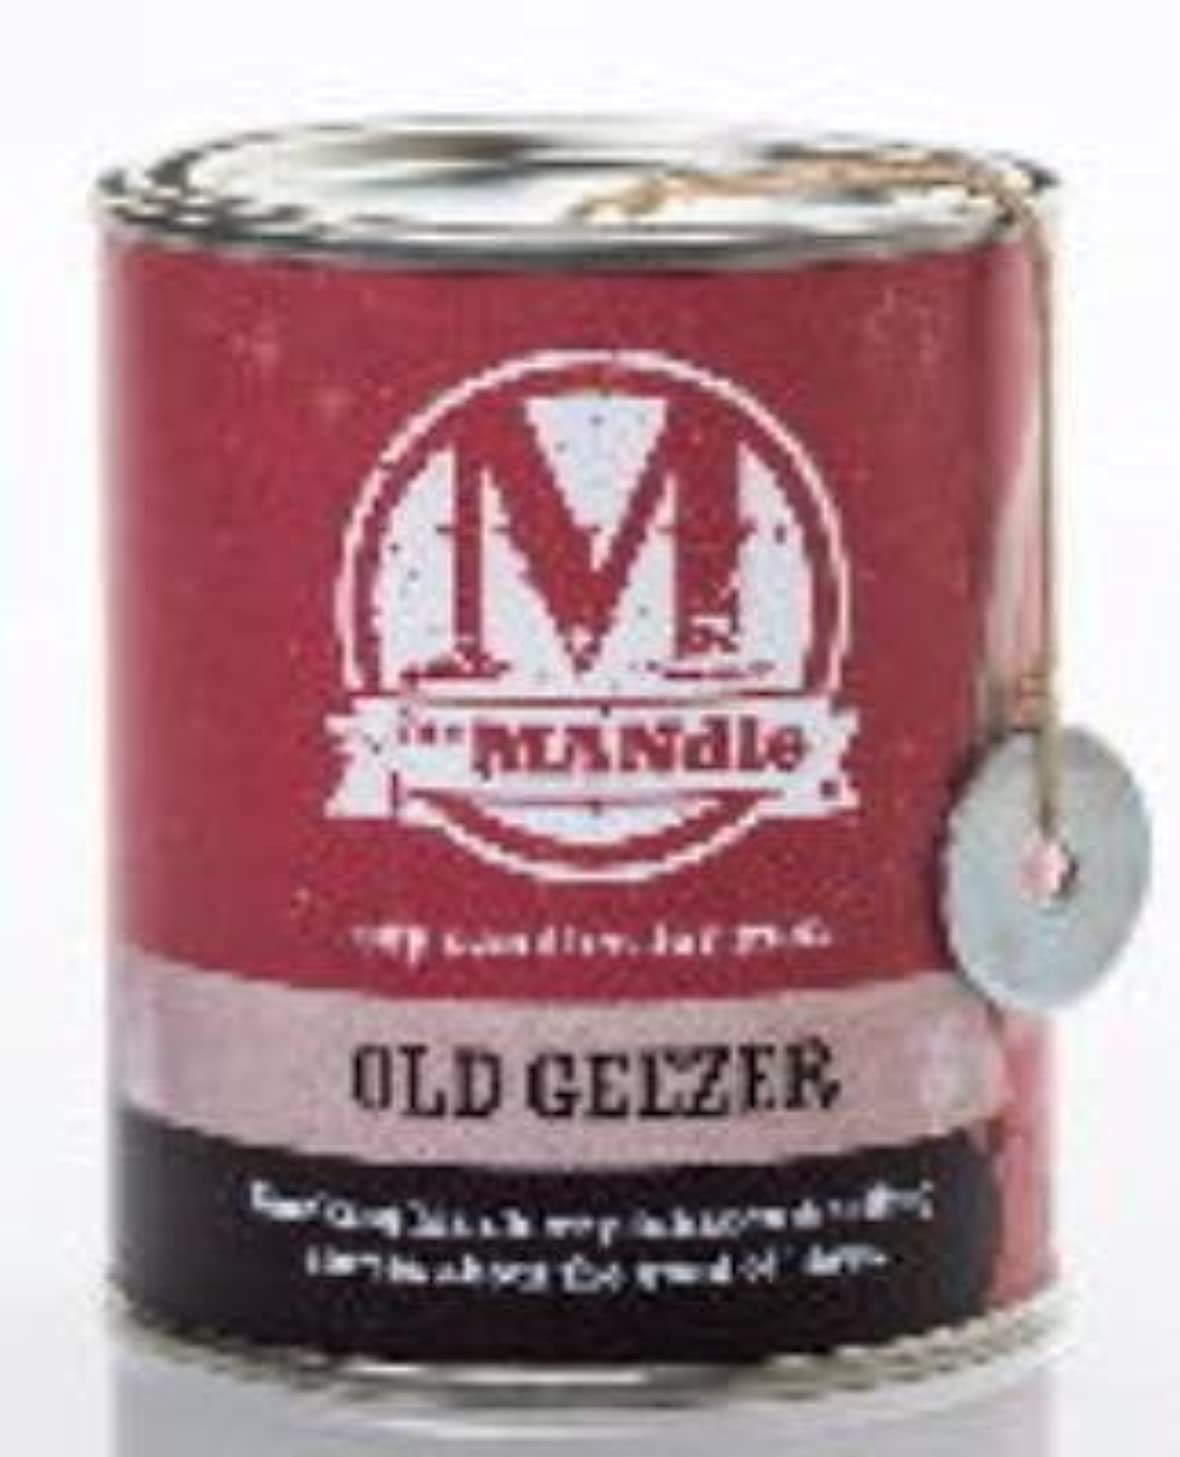 OLD GEEZER - The MANdle Scented Candle by Eco Candles okkewedyj